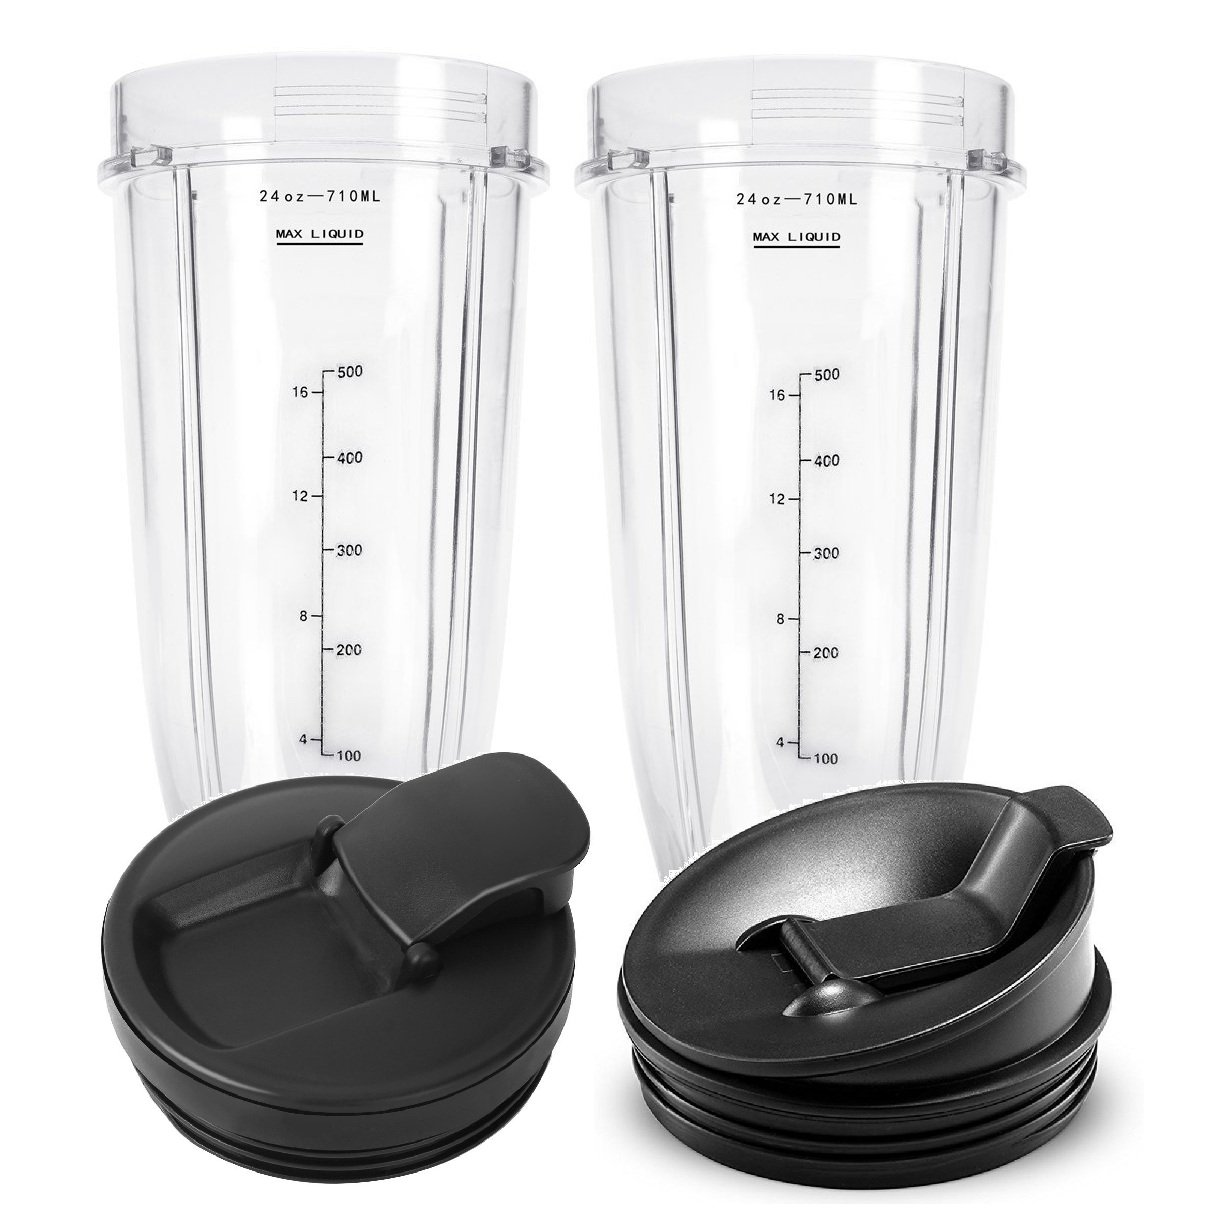 24 oz Cups, Compatible with BL480, BL490, BL640, BL680 for Nutri Ninja Auto IQ Series Blenders (Pack of 2)